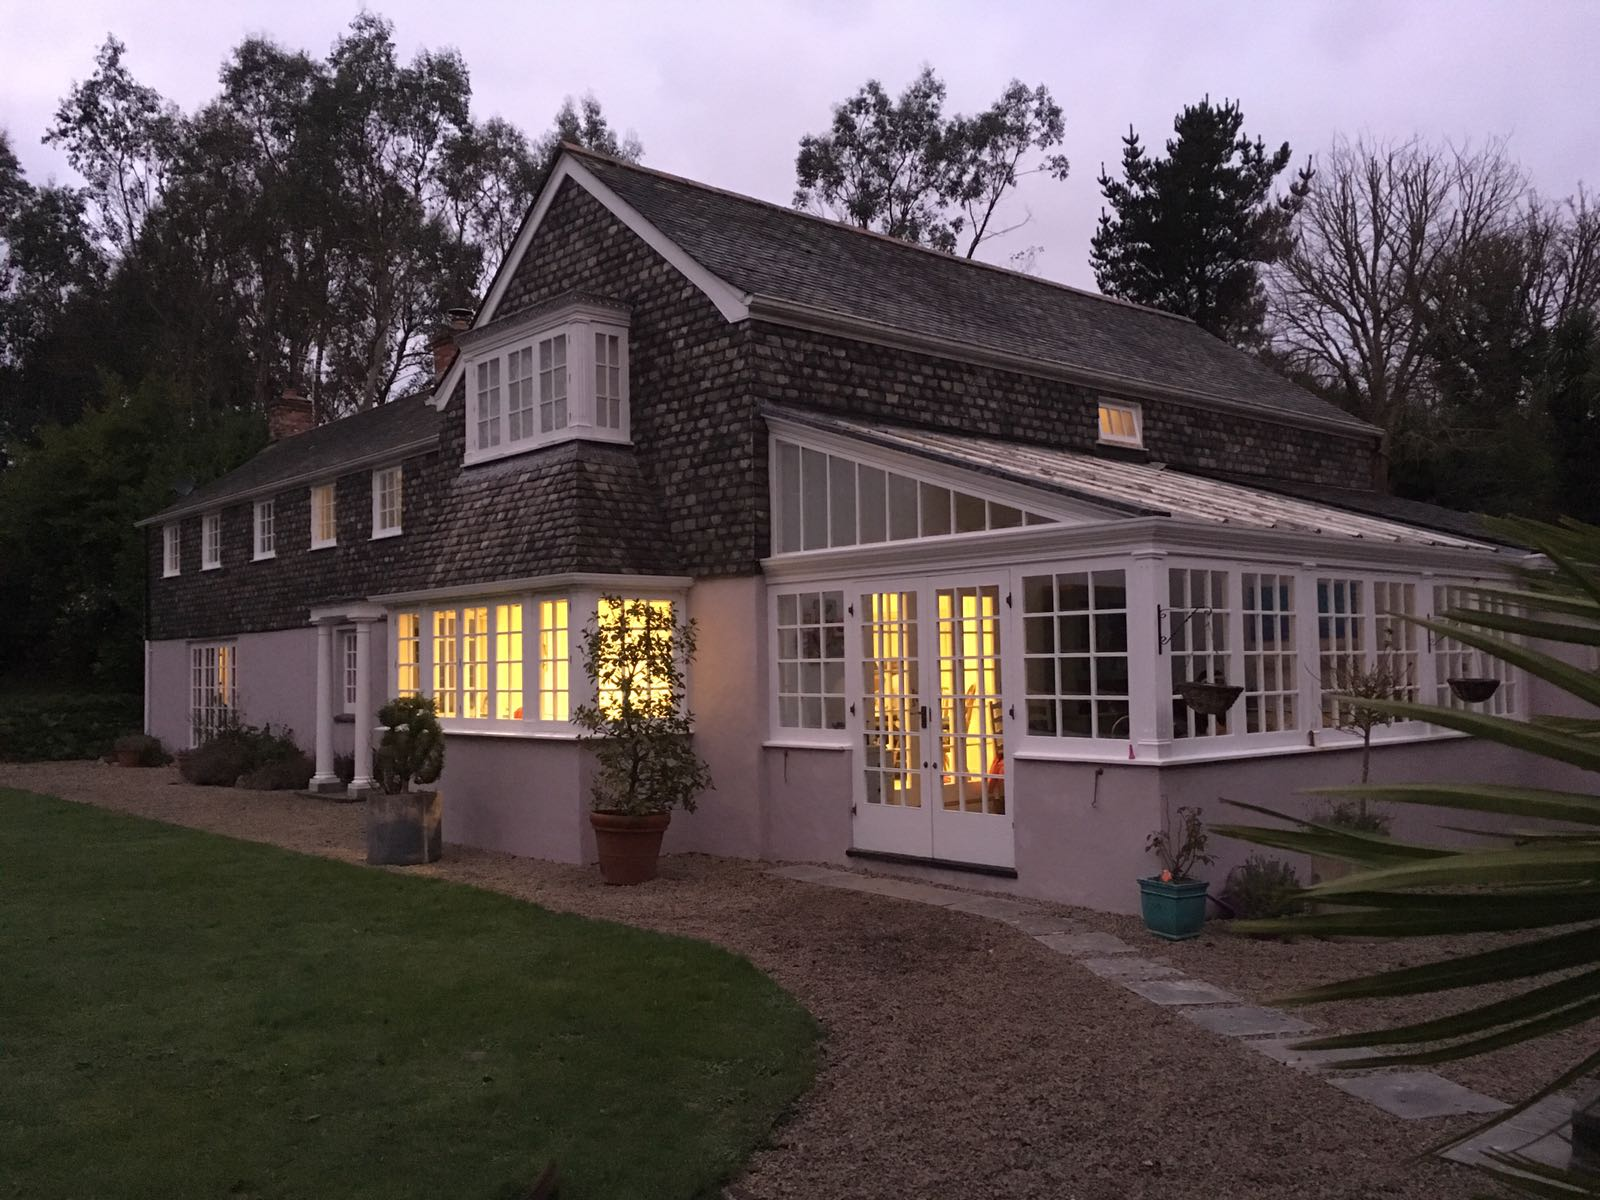 Pictures from a Christmas Holiday house in Cornwall that could be used to house a Cornwall Christmas Winter Wedding, planned by Jenny Wren